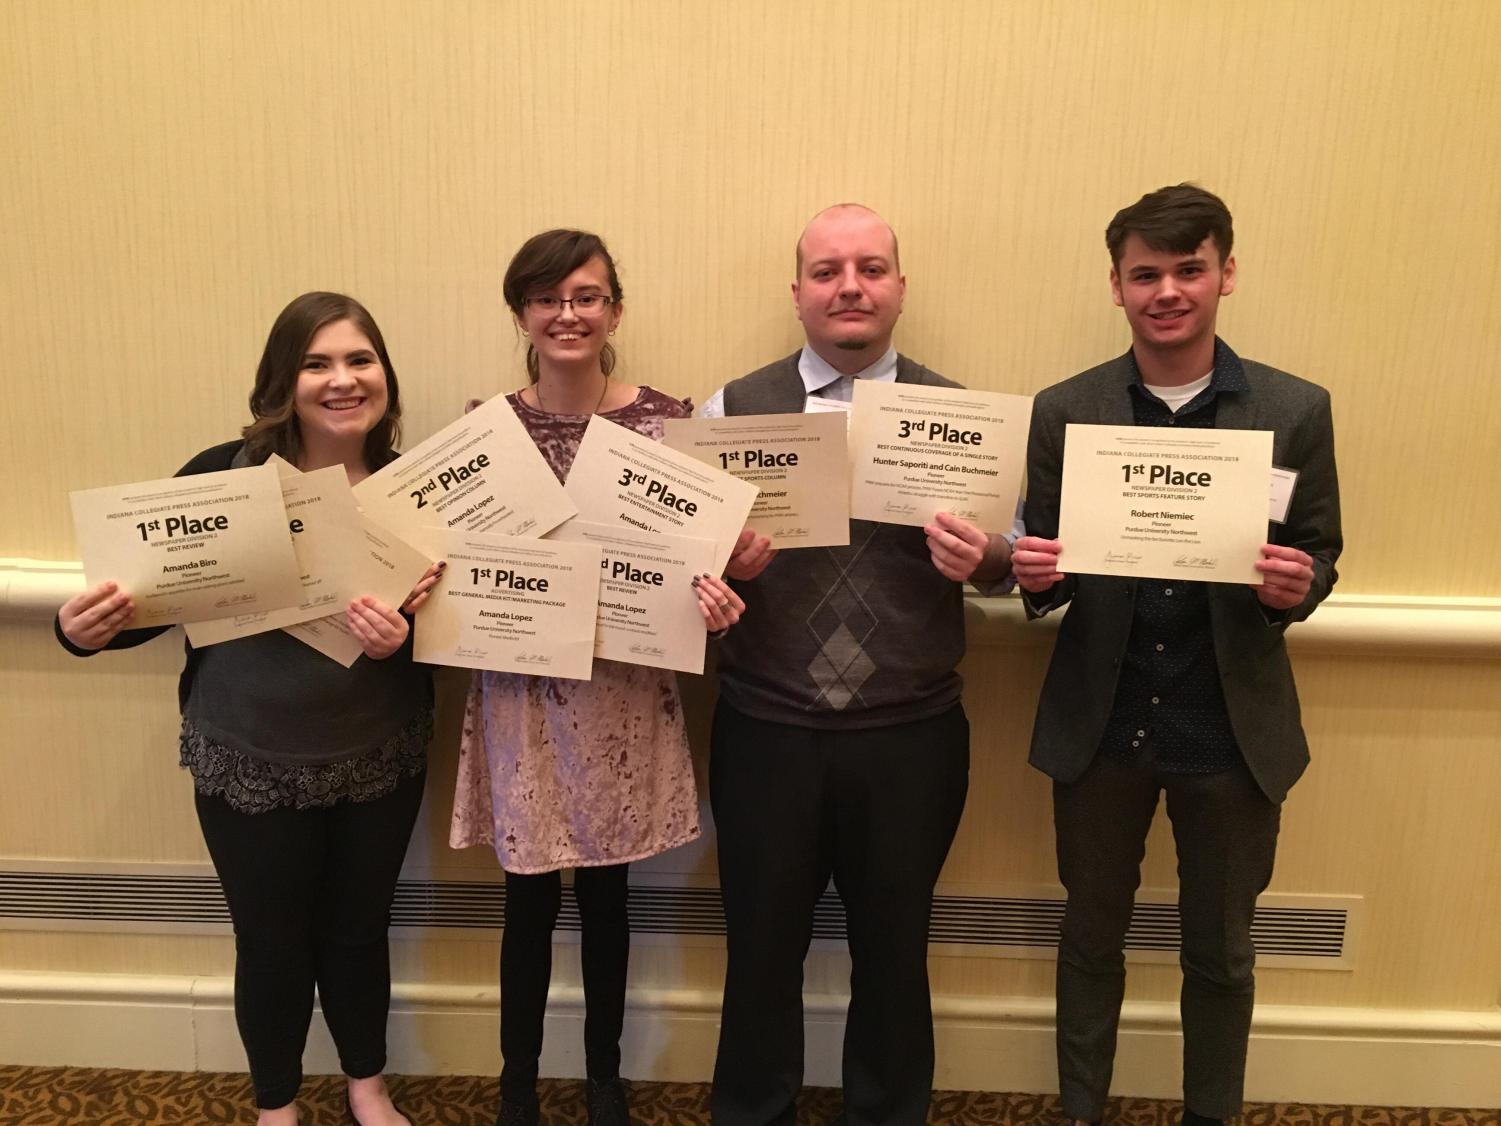 Amanda Biro, news editor; Amanda Lopez, editor-in-chief; Cain Buchmeier, copy editor, and Robert Niemiec, staff writer, (left to right) attend the April 7 Indiana Collegiate Press Association 2018 convention.